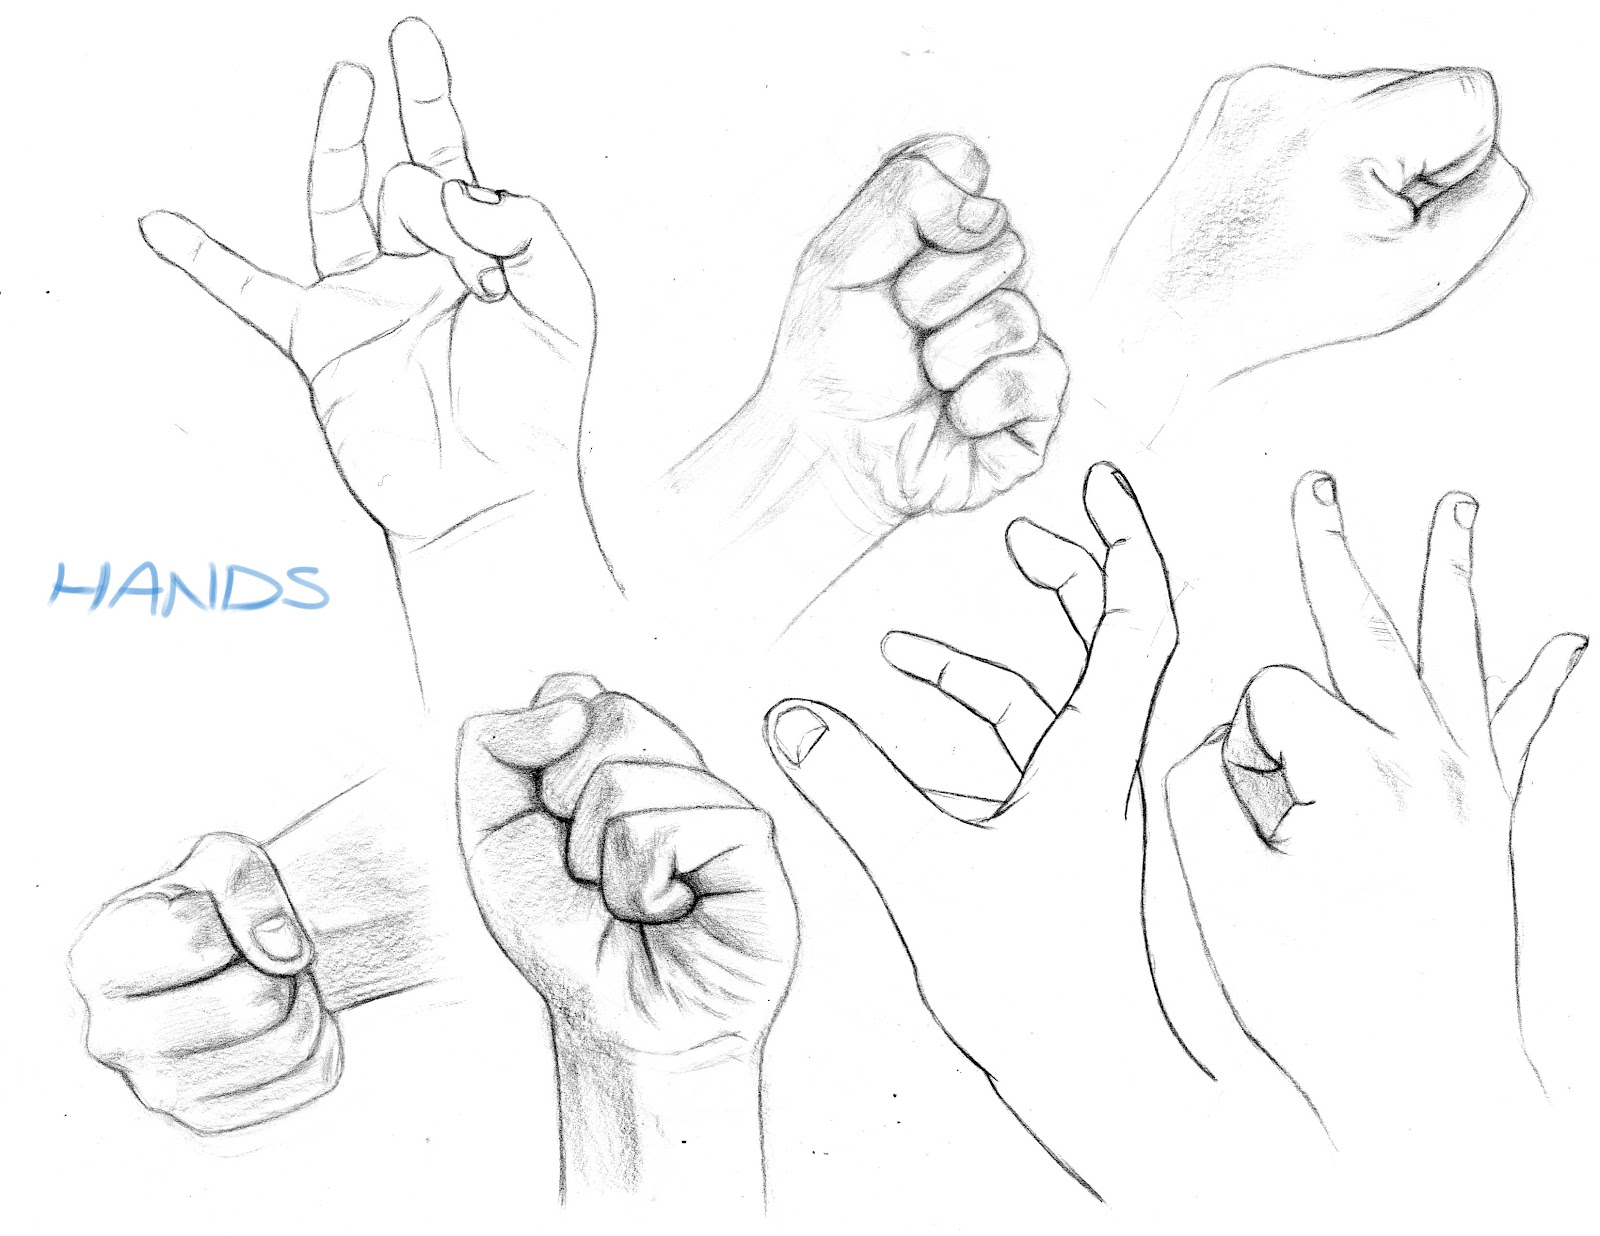 1600x1236 Arash Rod's Art Hands And Feet Drawings (Good As References)